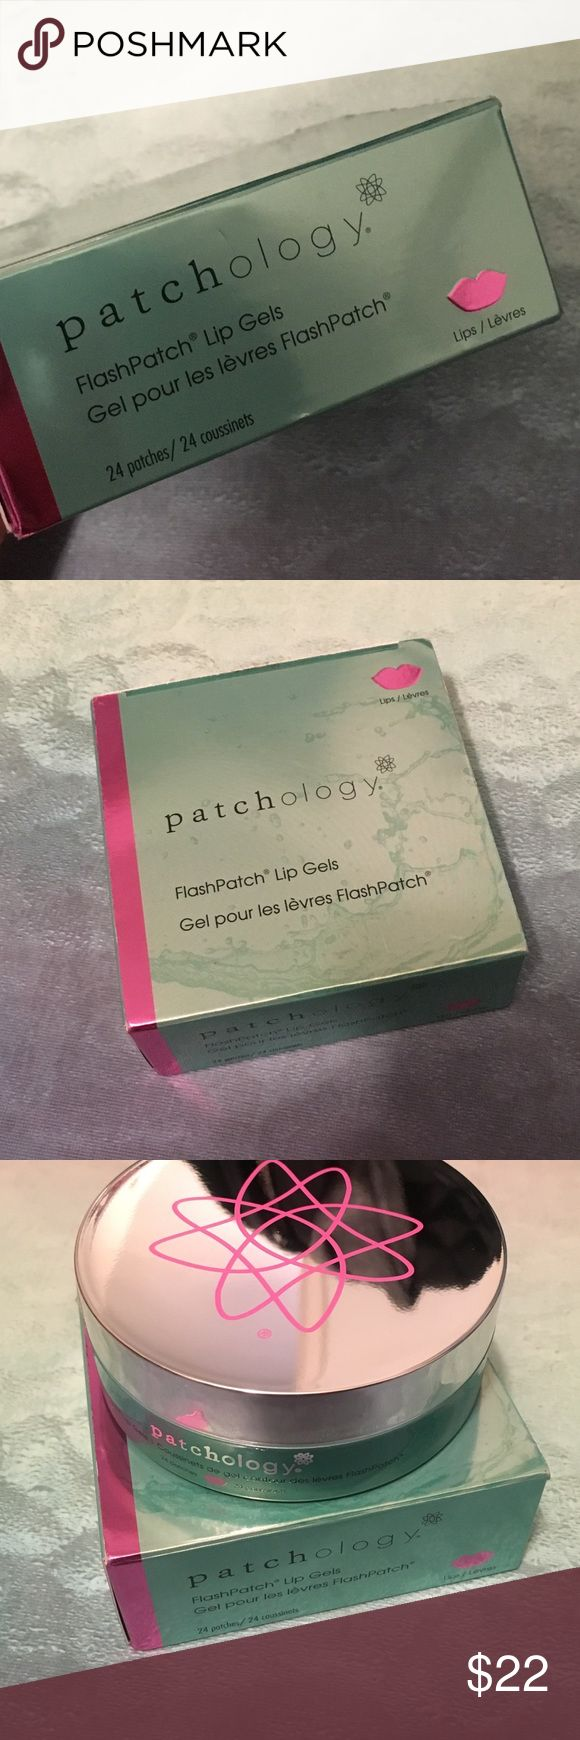 Patchology FlashPatch Lip Gels Lip Mask New in box. Soften, smooth and diminish the appearance of vertical lip lines in just five minutes with FlashPatch Lip Gels by patchology. The lip gels feature hydrogel patch technology, which provides deep hydration and lip revitalization in a way that topical lip treatments cannot. They stay put, too, to ensure you get the ingredients where you need them most. The result is softer, smoother and more youthful-looking lips. Includes 24 patches…